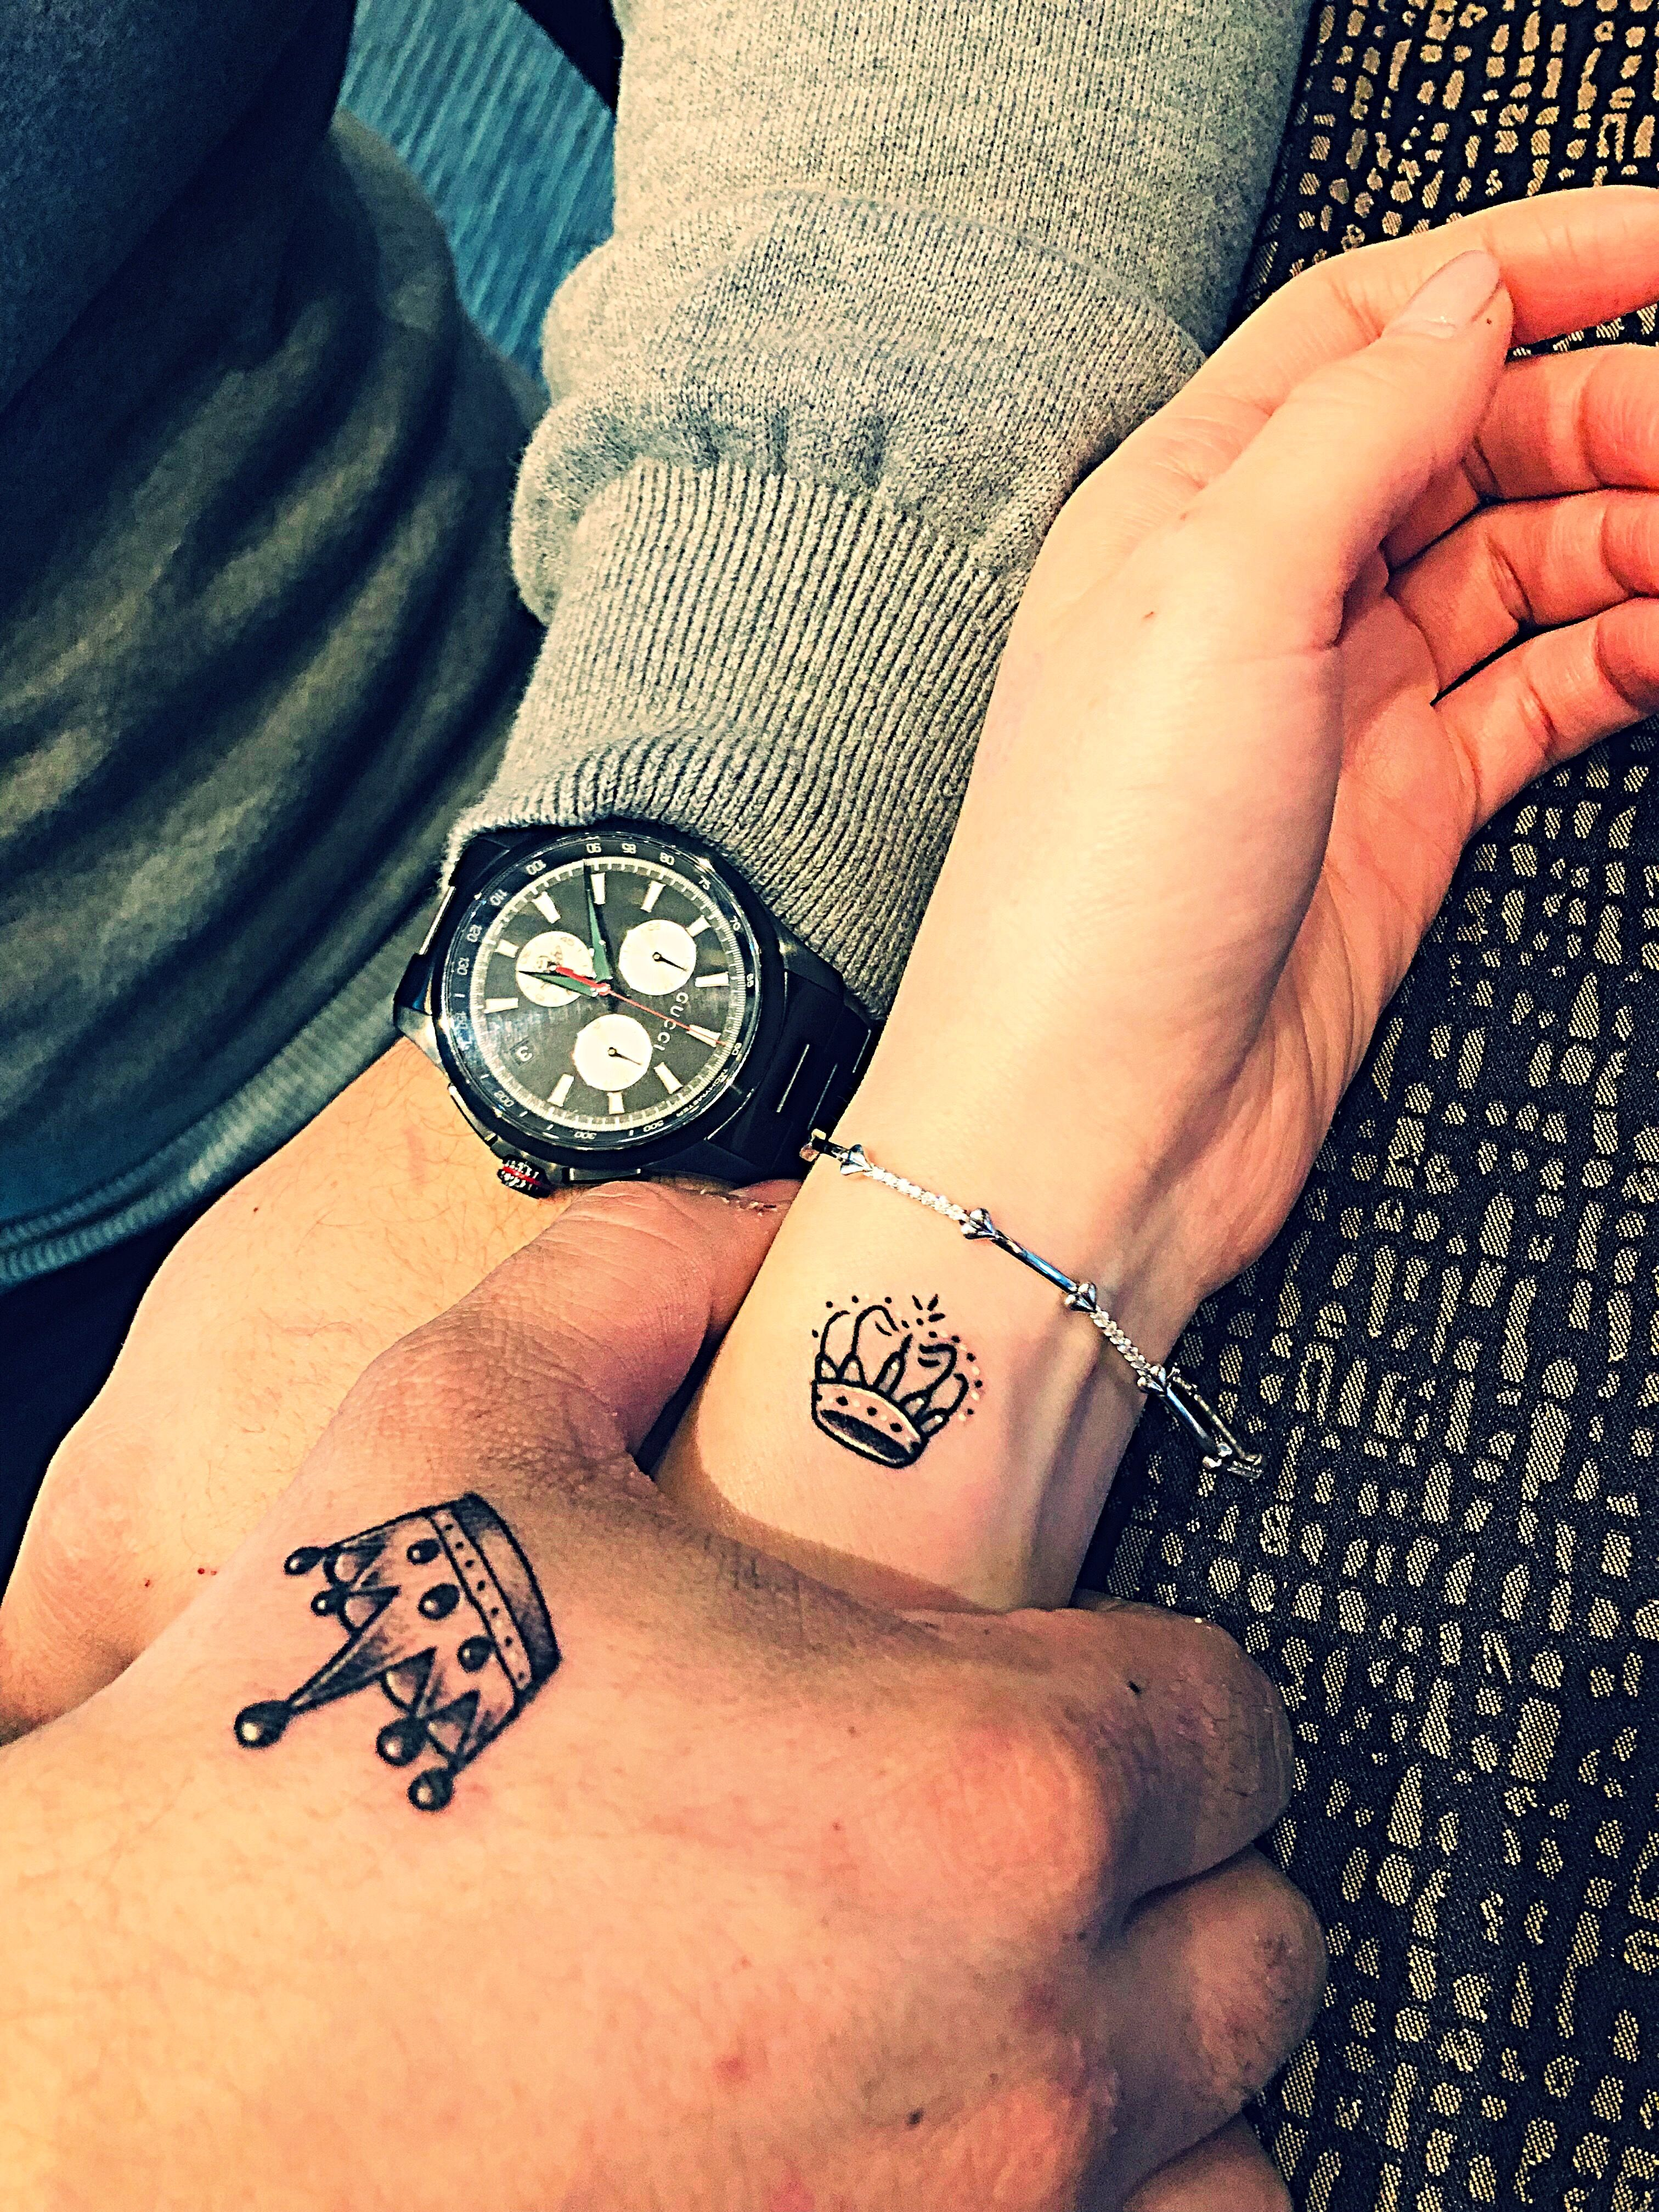 King And Queen Tattoo Queen Tattoo Couple Tattoos King Queen